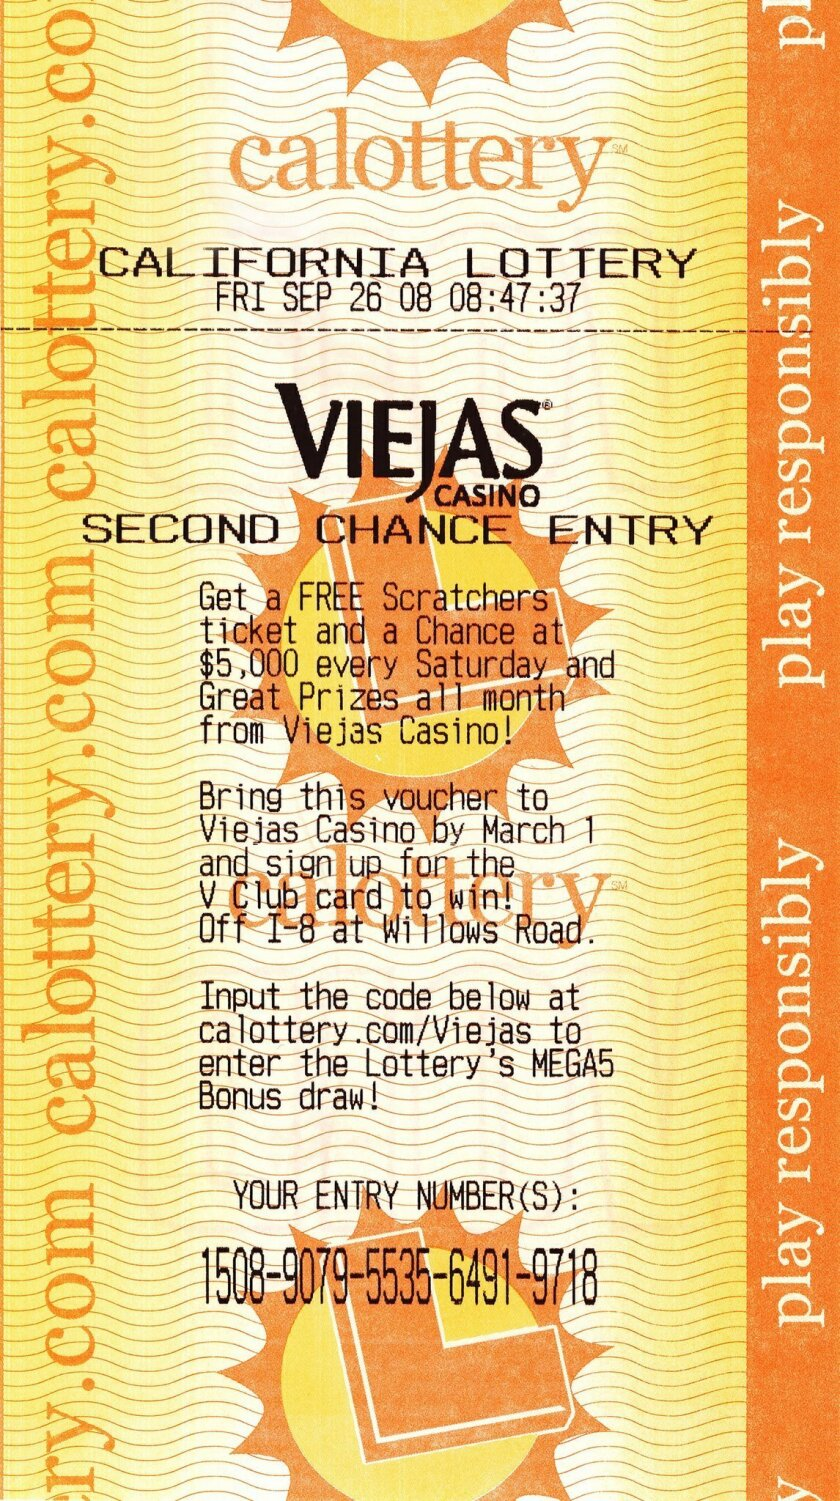 Viejas teams up with California Lottery - The San Diego